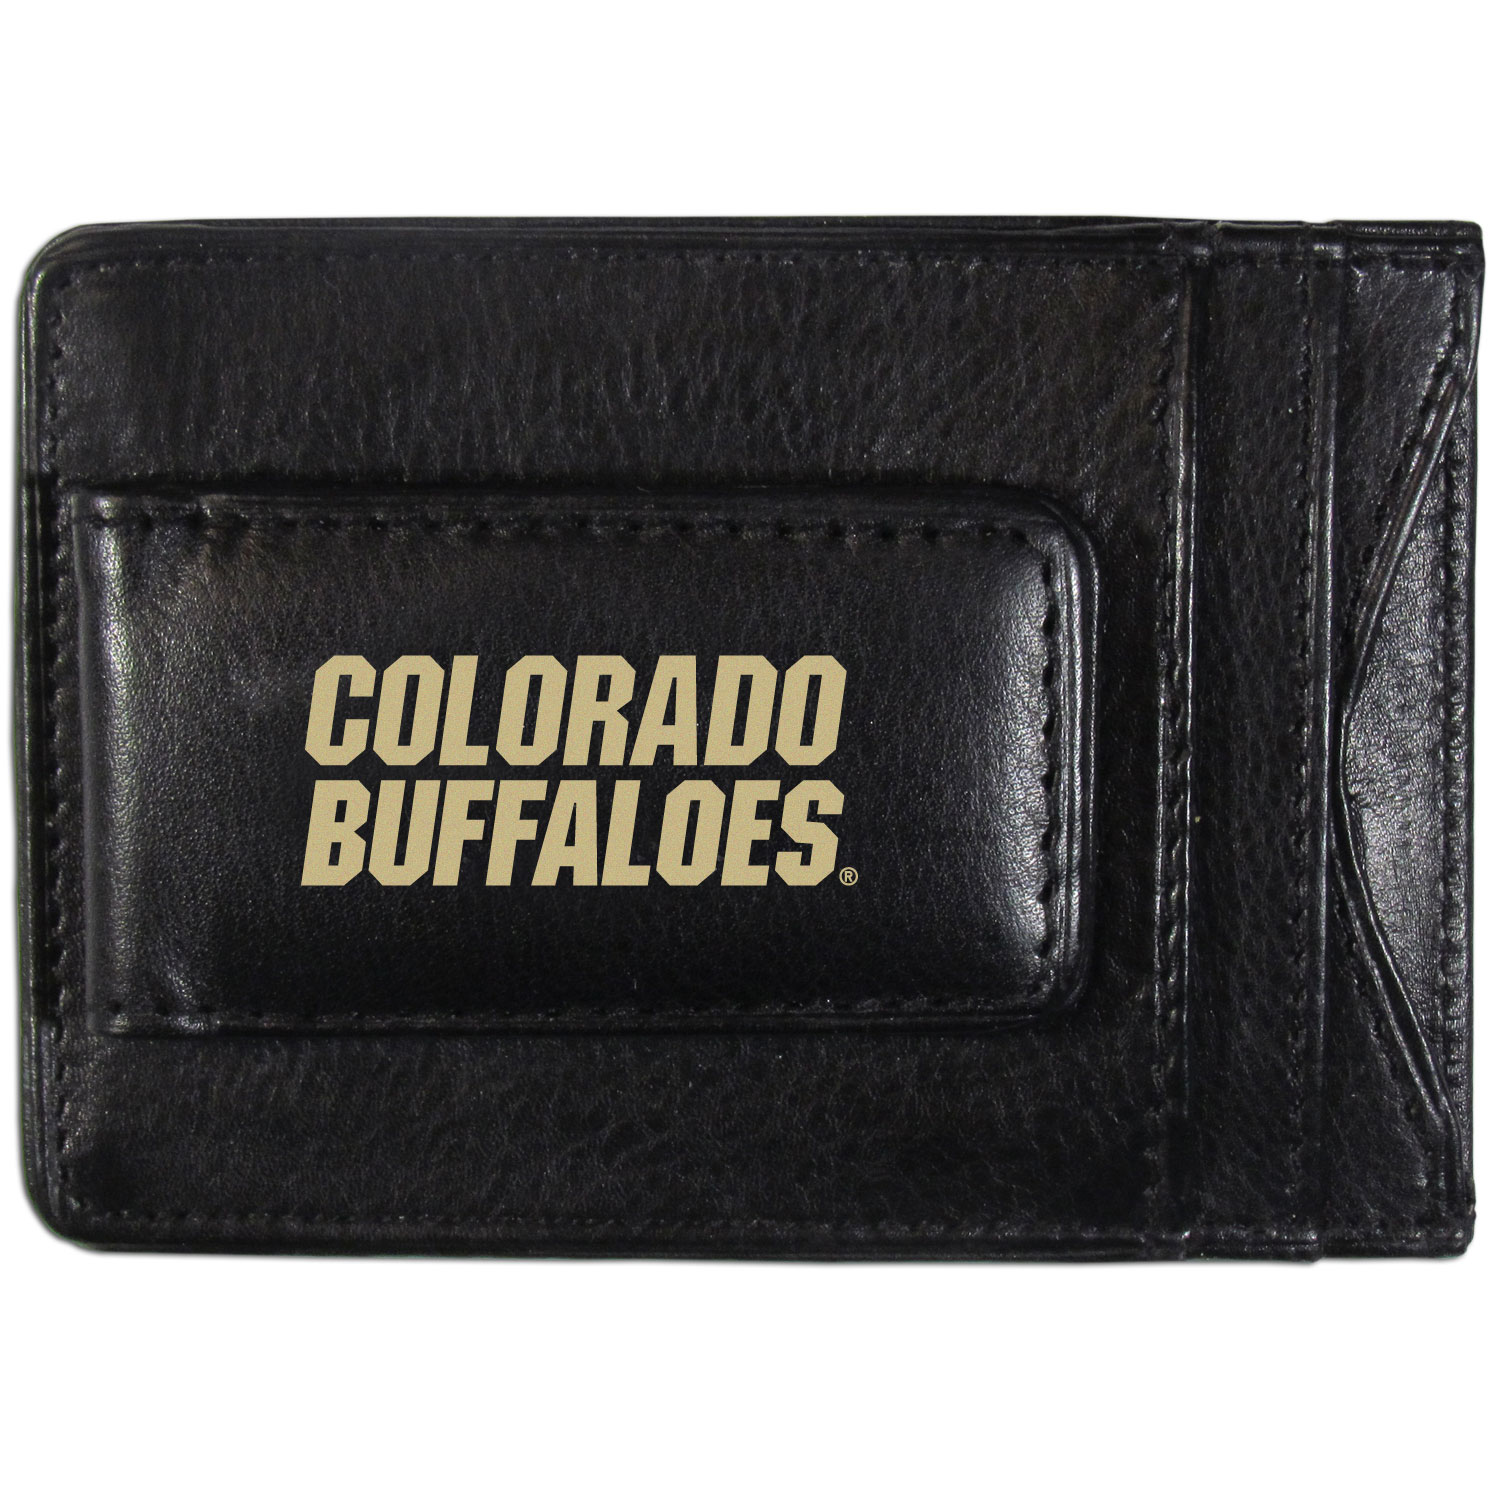 Colorado Buffaloes Logo Leather Cash and Cardholder - This super slim leather wallet lets you have all the benefits of a money clip while keeping the organization of a wallet. On one side of this front pocket wallet there is a strong, magnetic money clip to keep your cash easily accessible and the?Colorado Buffaloes team logo on the front. The versatile men's accessory is a perfect addition to your fan apparel.